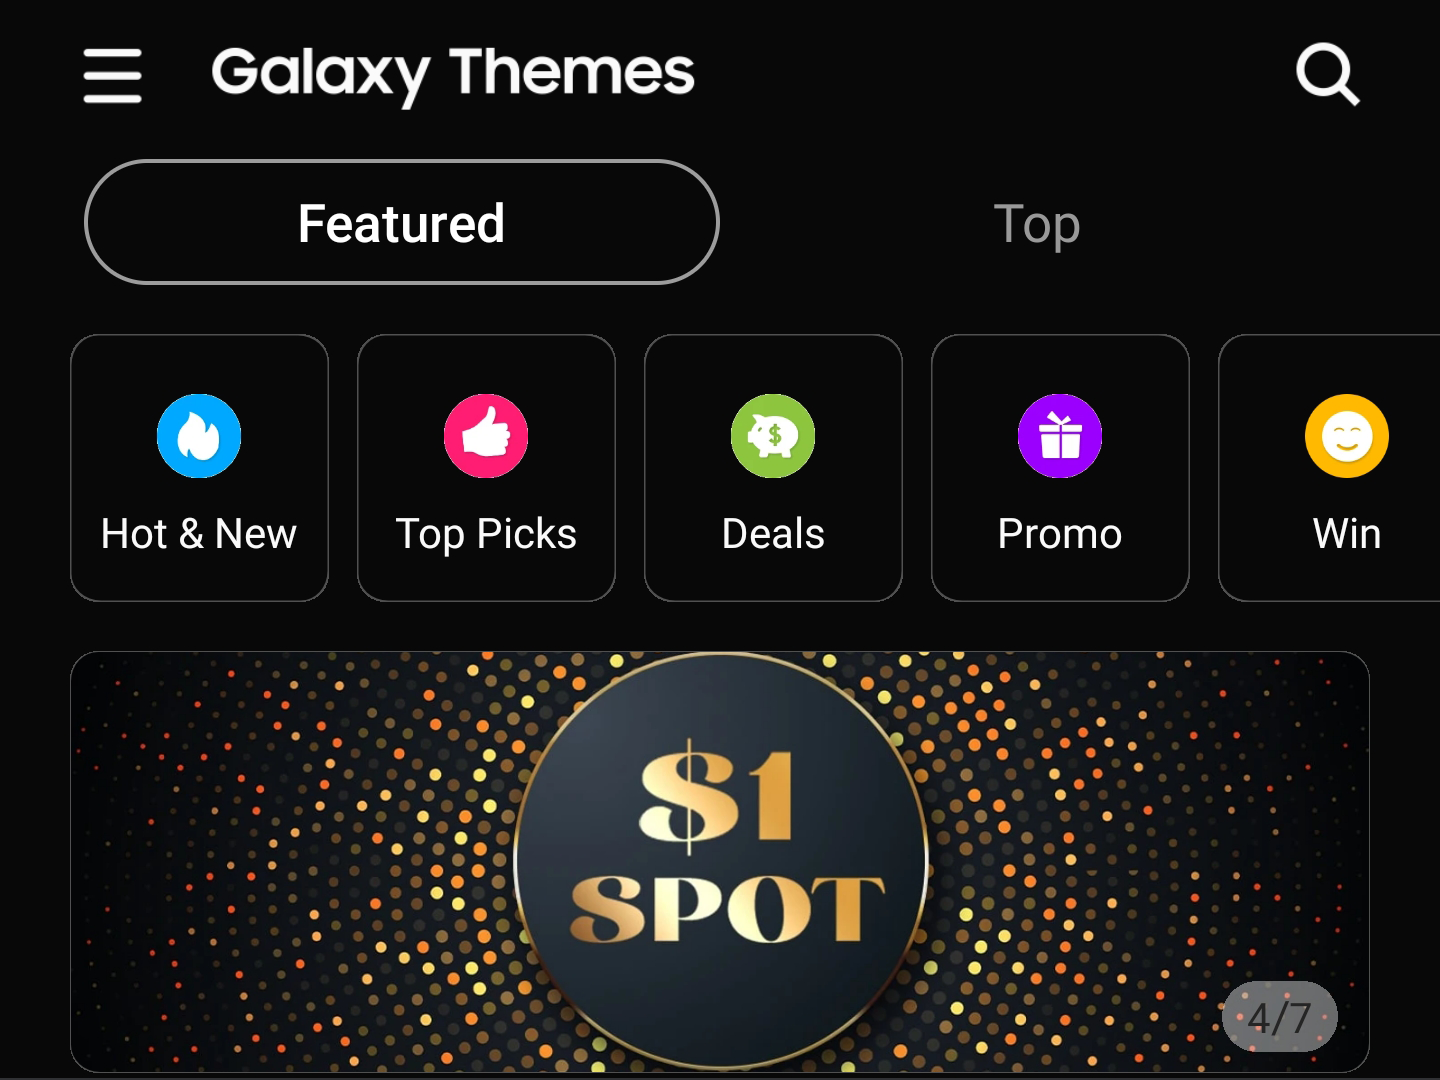 Samsung Galaxy Themes gets dark mode with v5.1 (APK Download) - Android Police